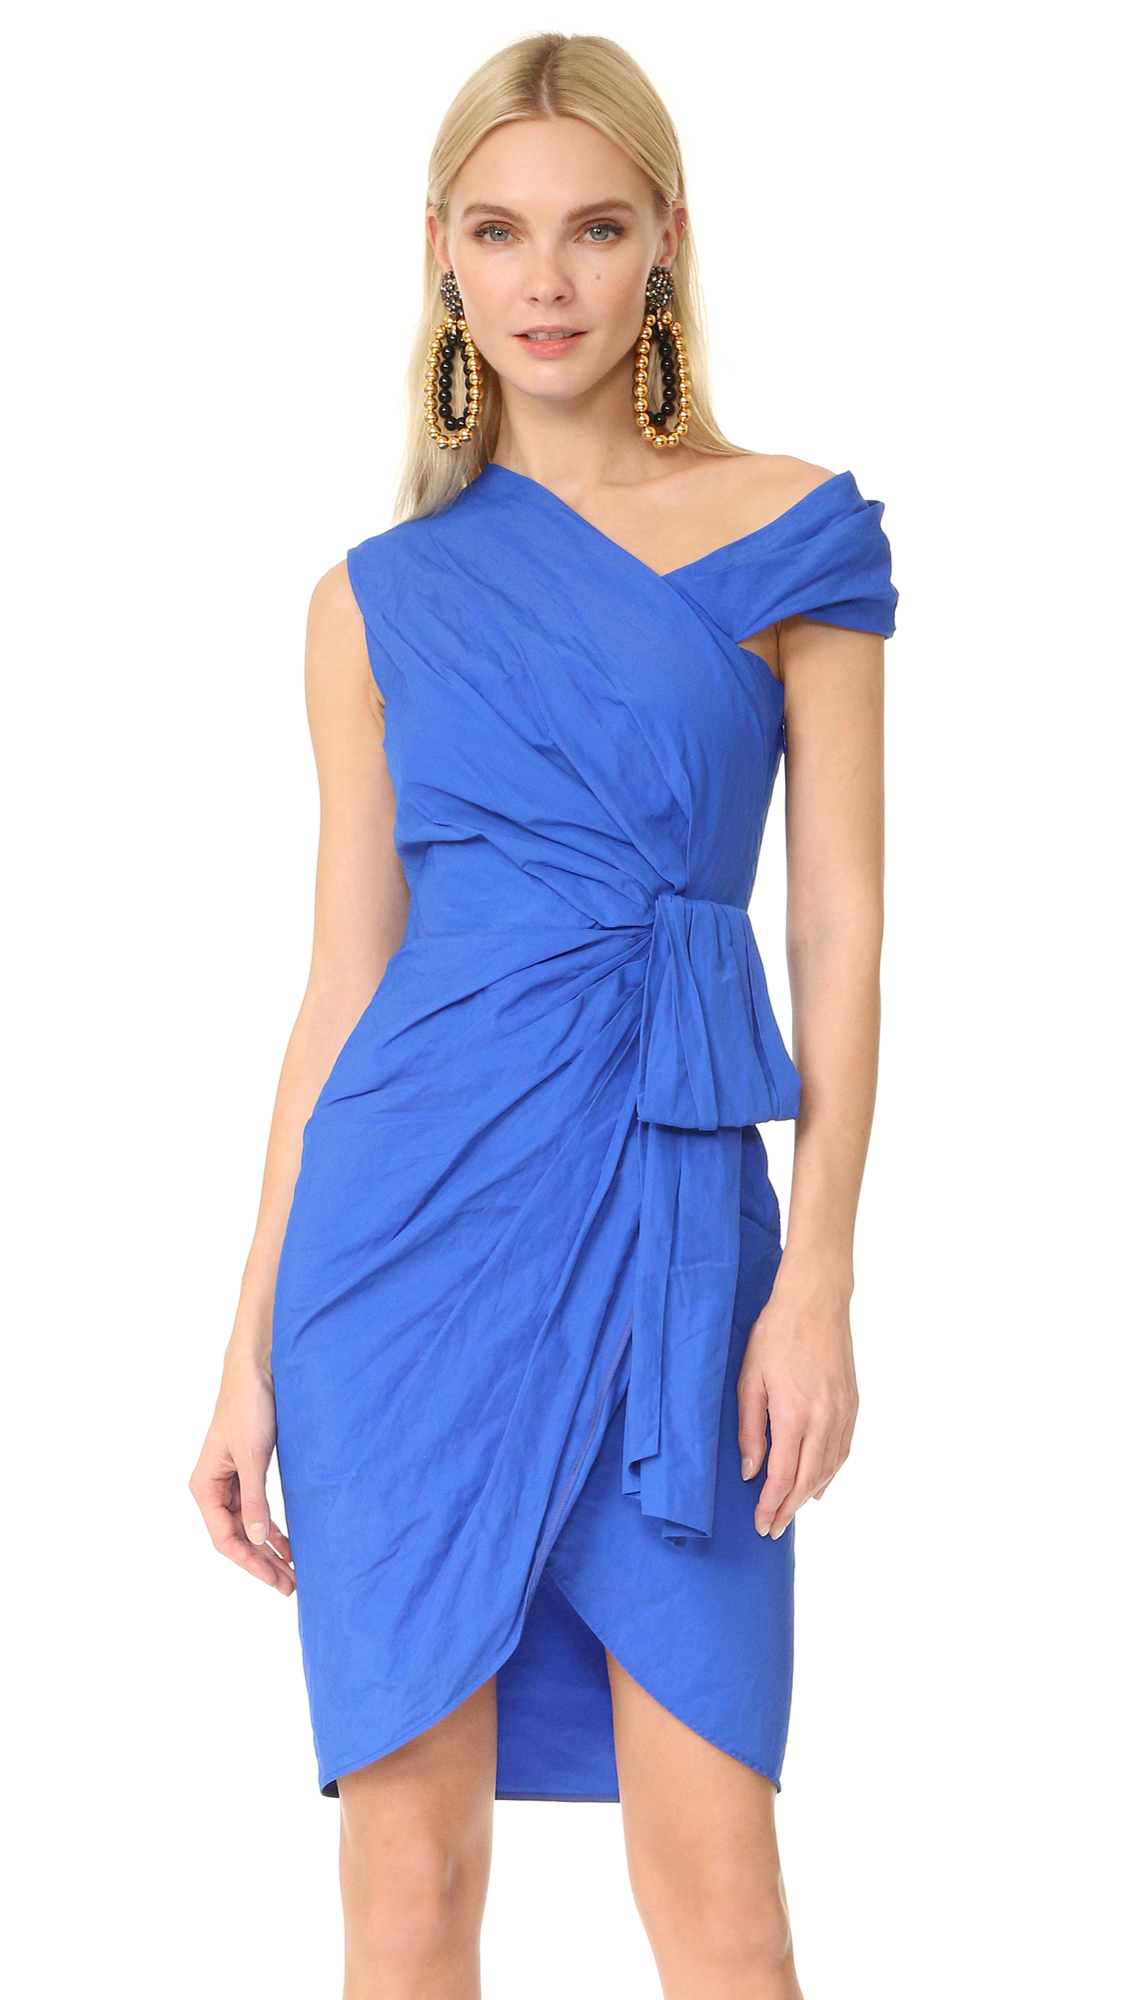 Moschino One Shoulder Dress - Blue at Shopbop